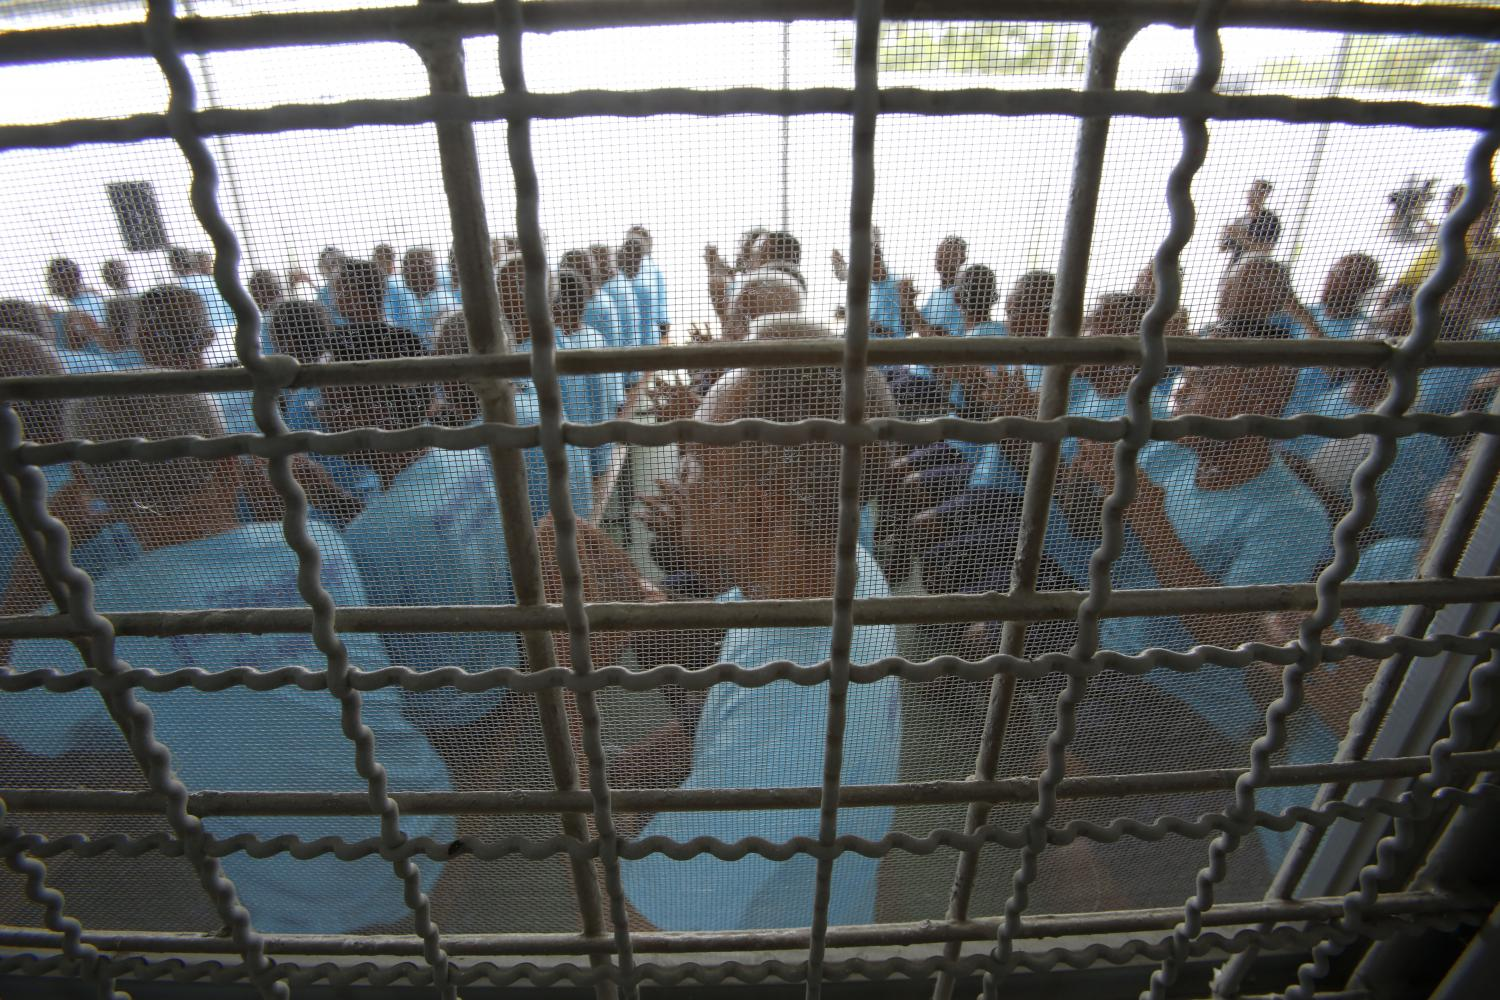 Prisoners gather in Klong Prem Prison in Bangkok last year. The Covid-19 outbreak risks the lives of inmates linked to non-violent drug crime. (Photo by Pornprom Sattrabhaya)